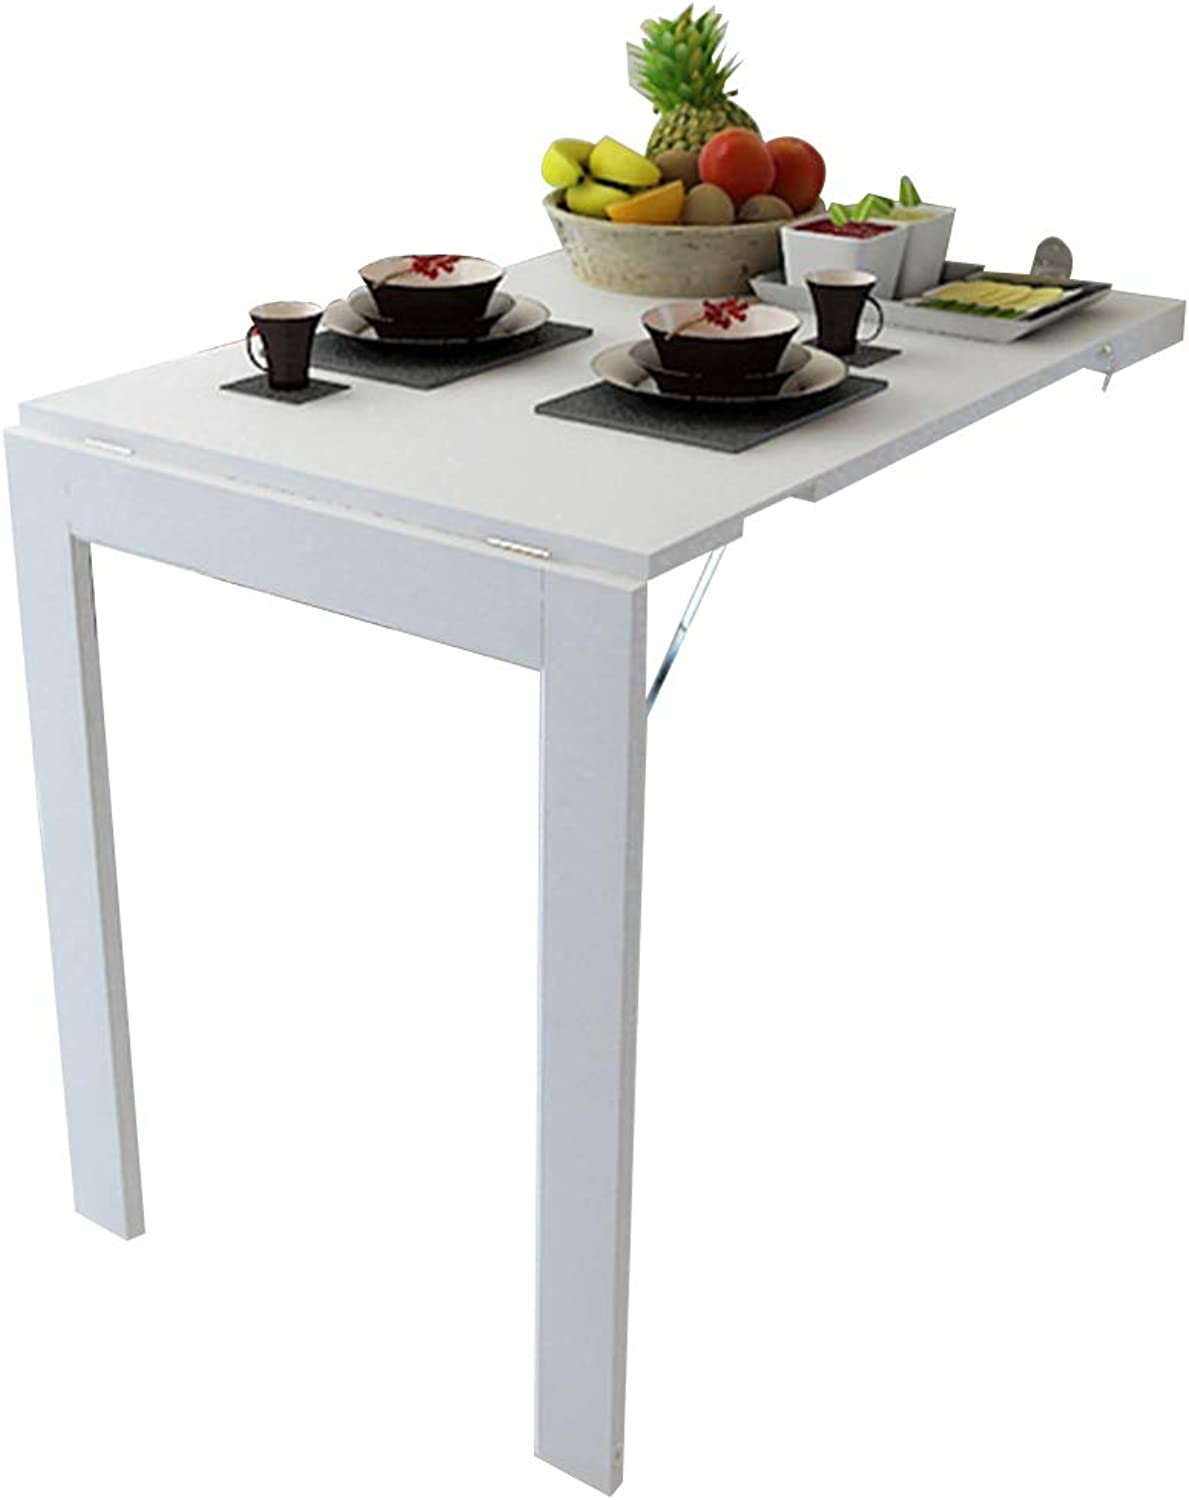 Virod-Desks Wall Mount Folding Table Drop-Leaf Table, Simple Against The Wall Dining Table Wall Hanging Computer Desk, 2 colors Modern Style (color   White)